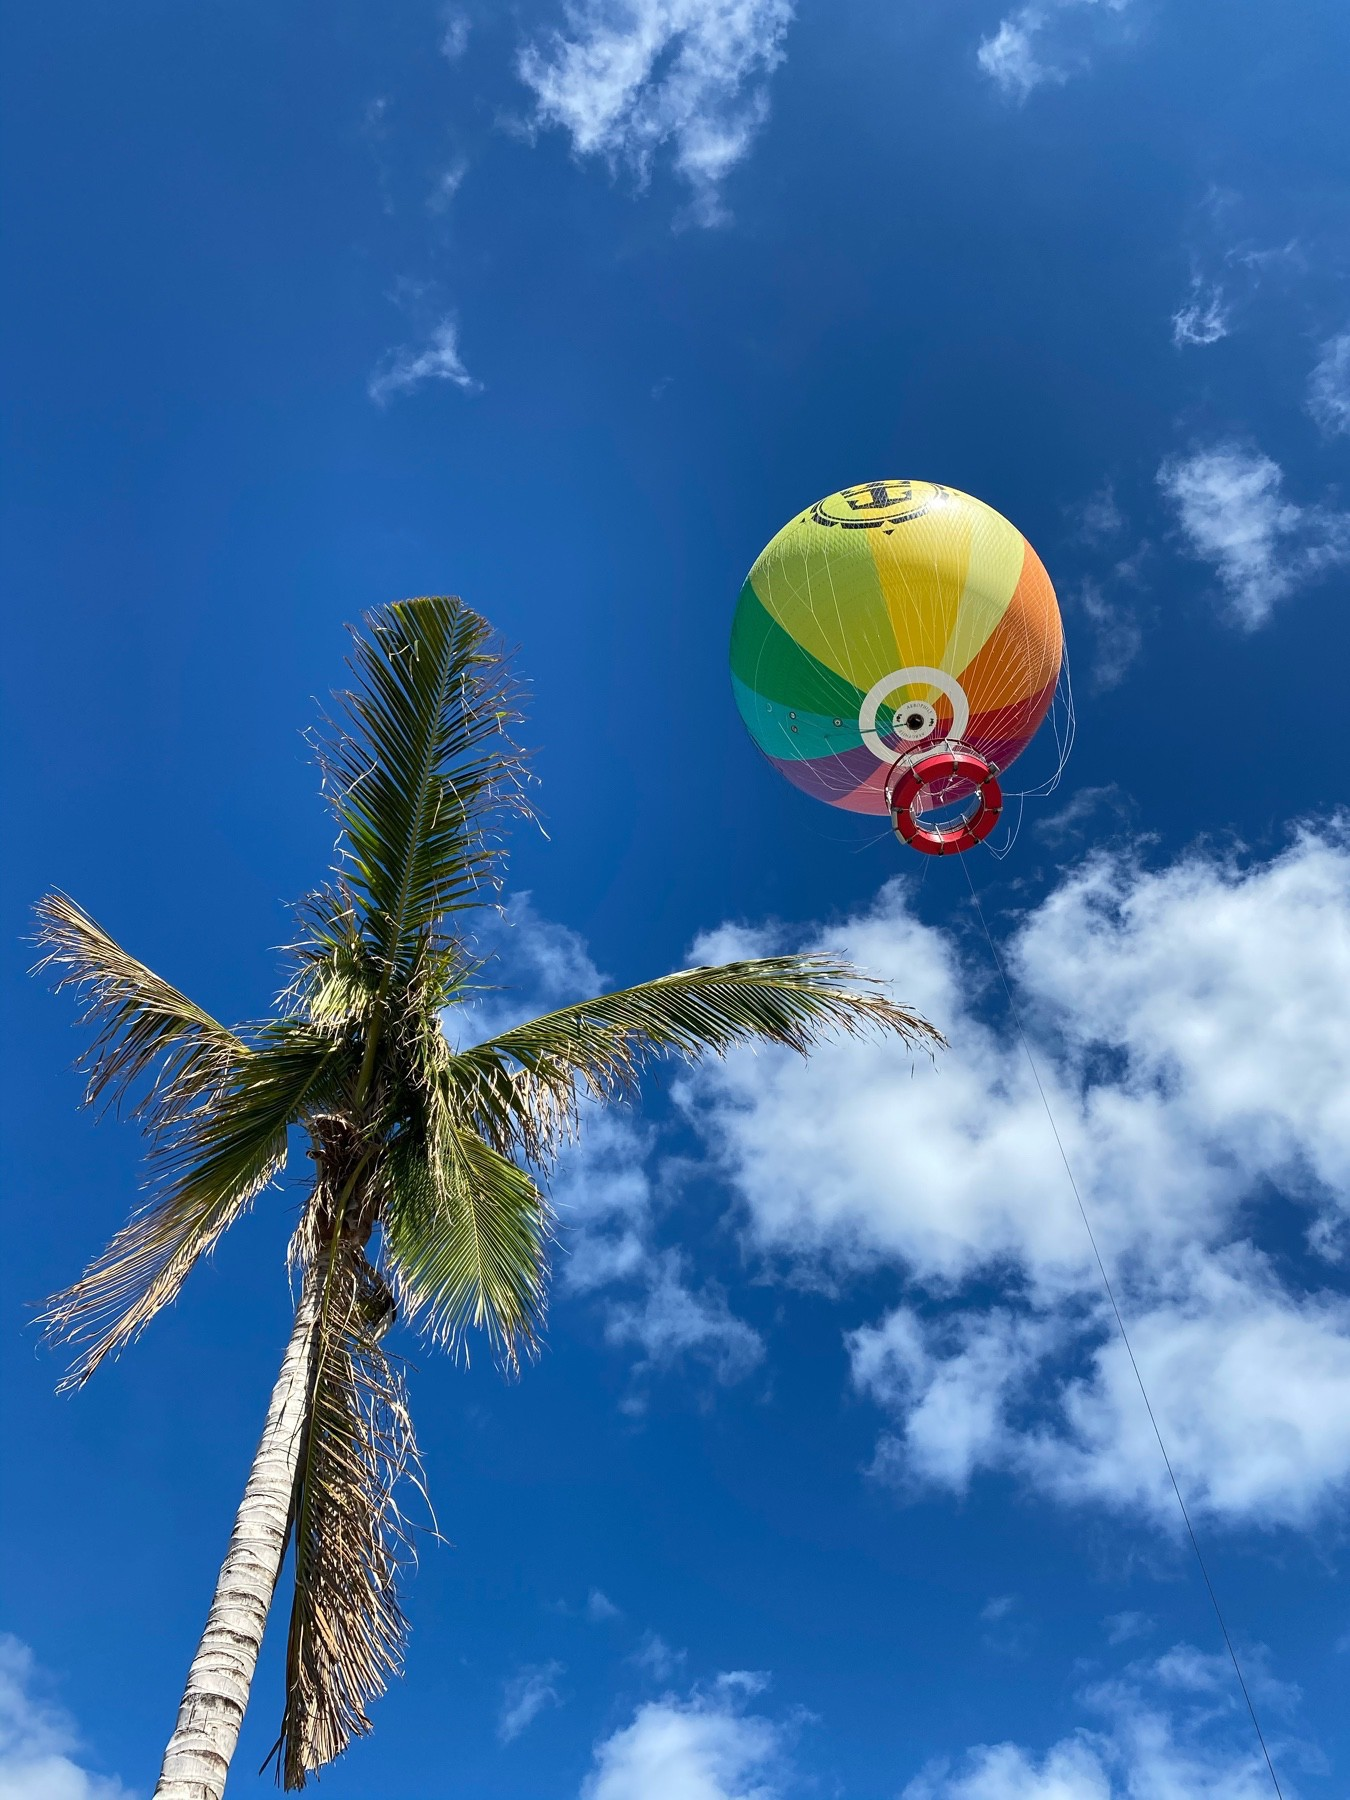 A hot air balloon sits atop the upper right corner against a bright, blue sky with a palm tree sprouting up from the bottom left corner.